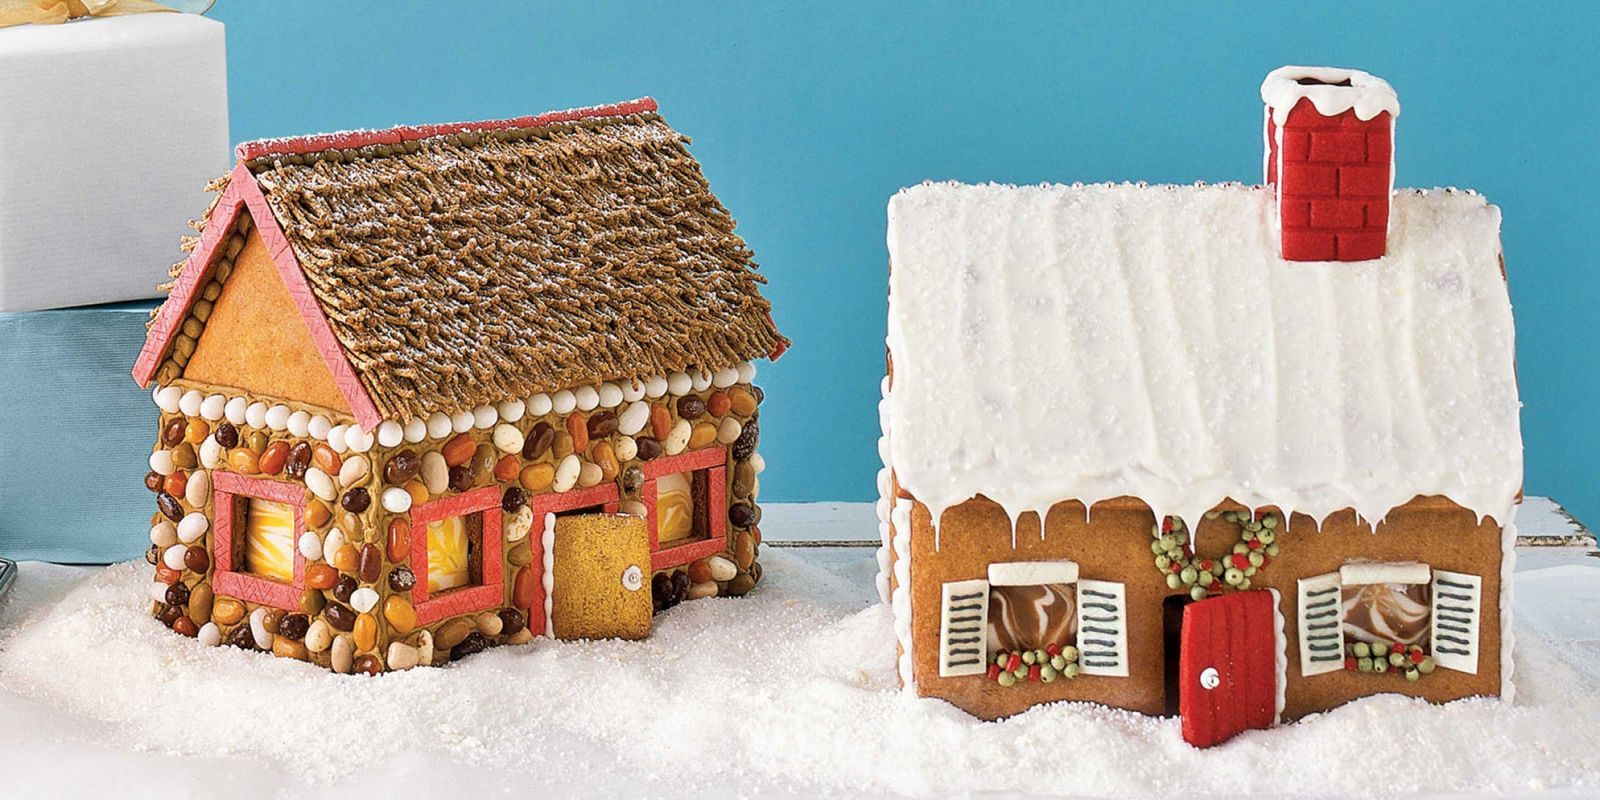 best gingerbread houses & 25 Cute Gingerbread House Ideas u0026 Pictures - How to Make a ...